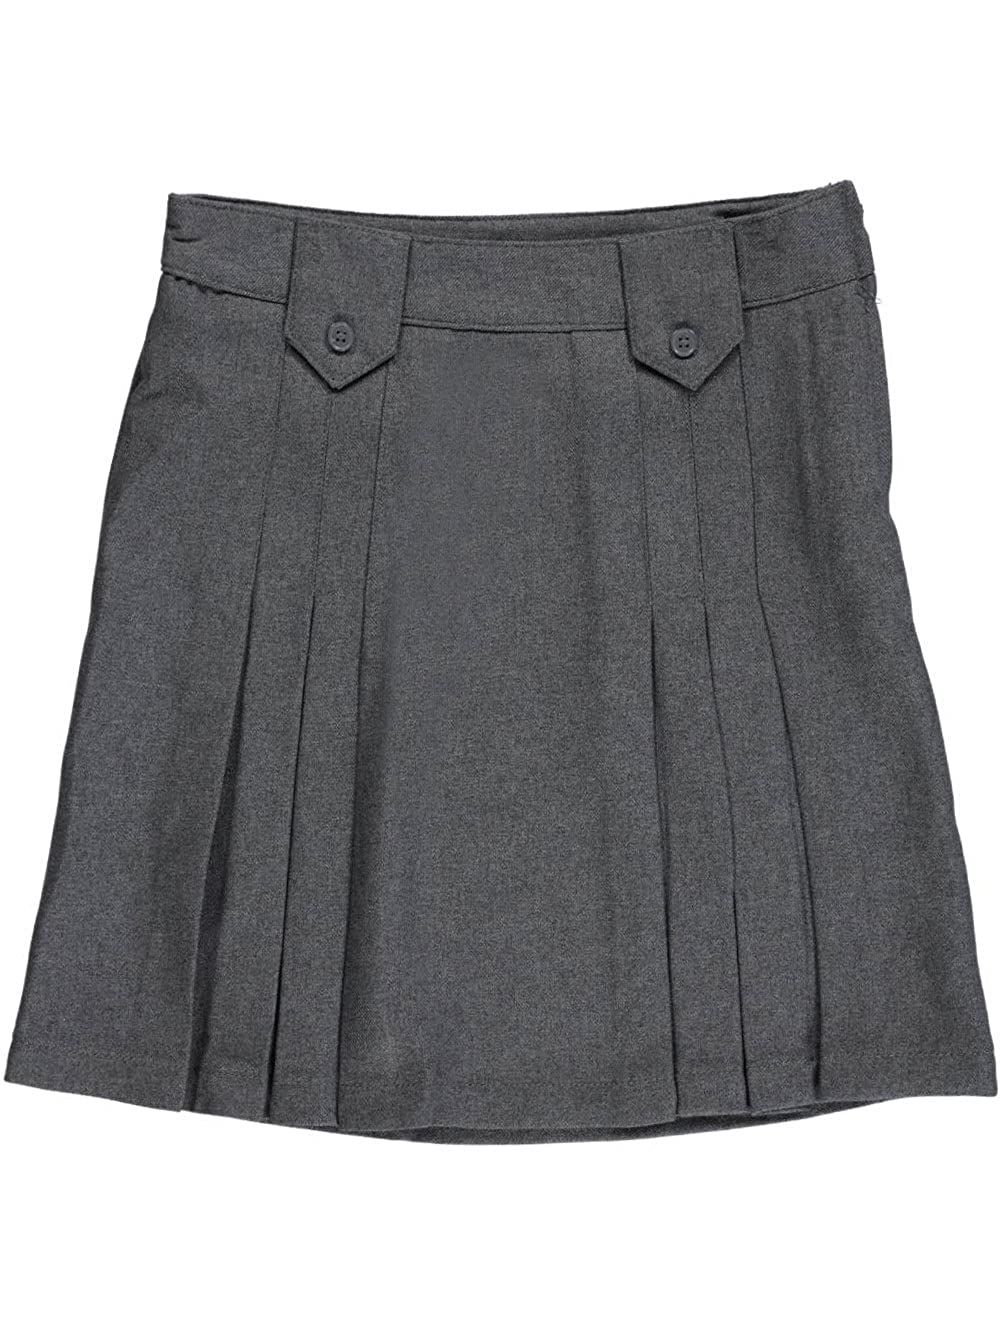 French Toast Big Girls' Pleat and Tab Skirt - Gray, 14